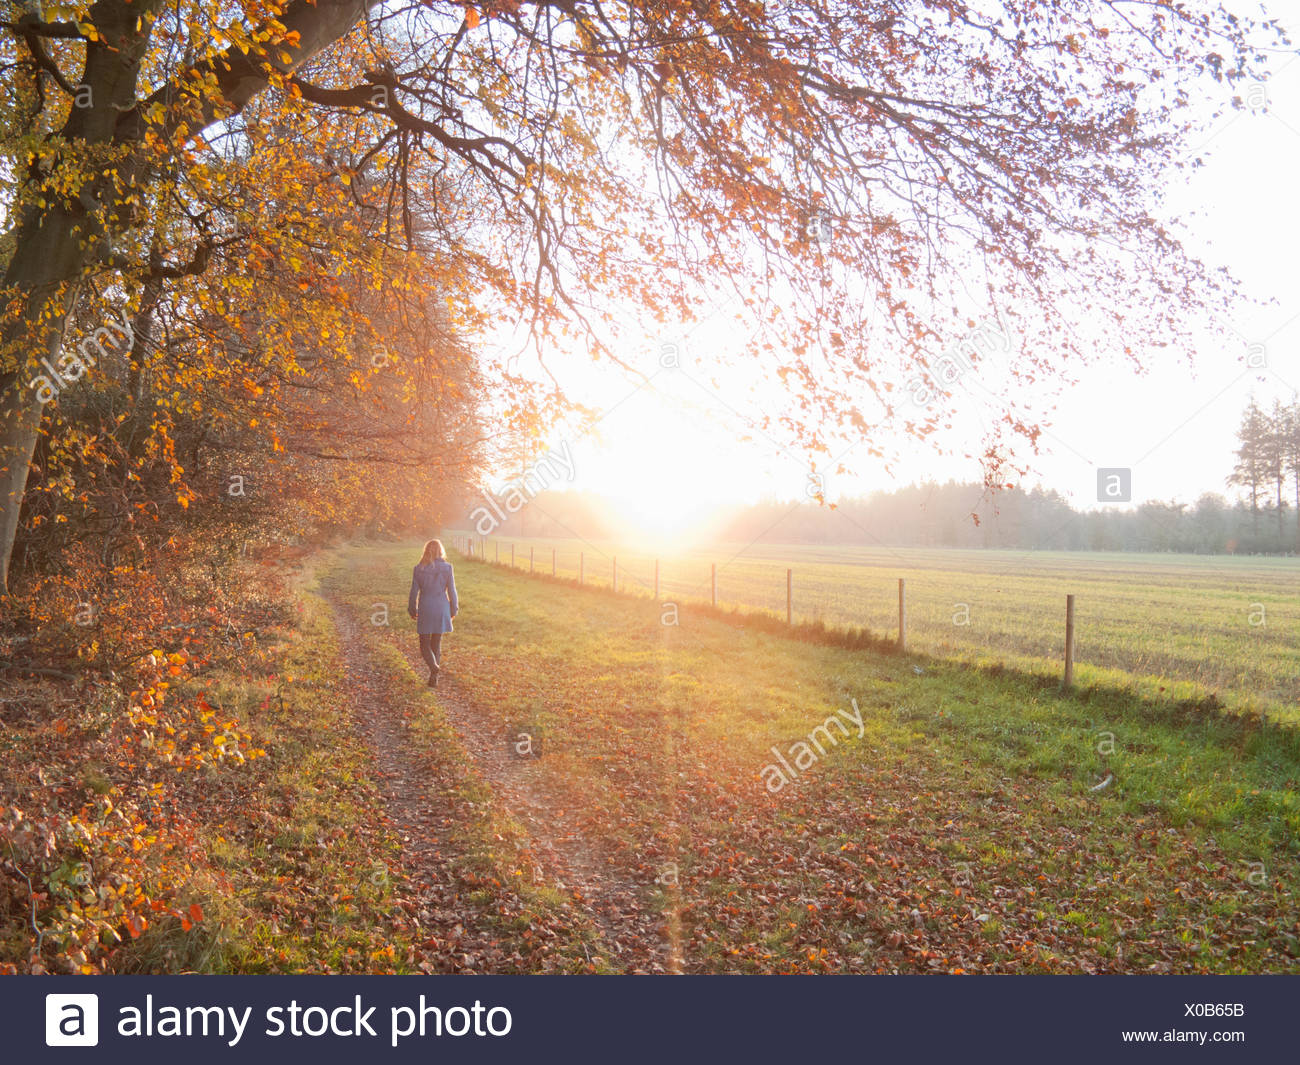 Woman walking in countryside in the autumn - Stock Image